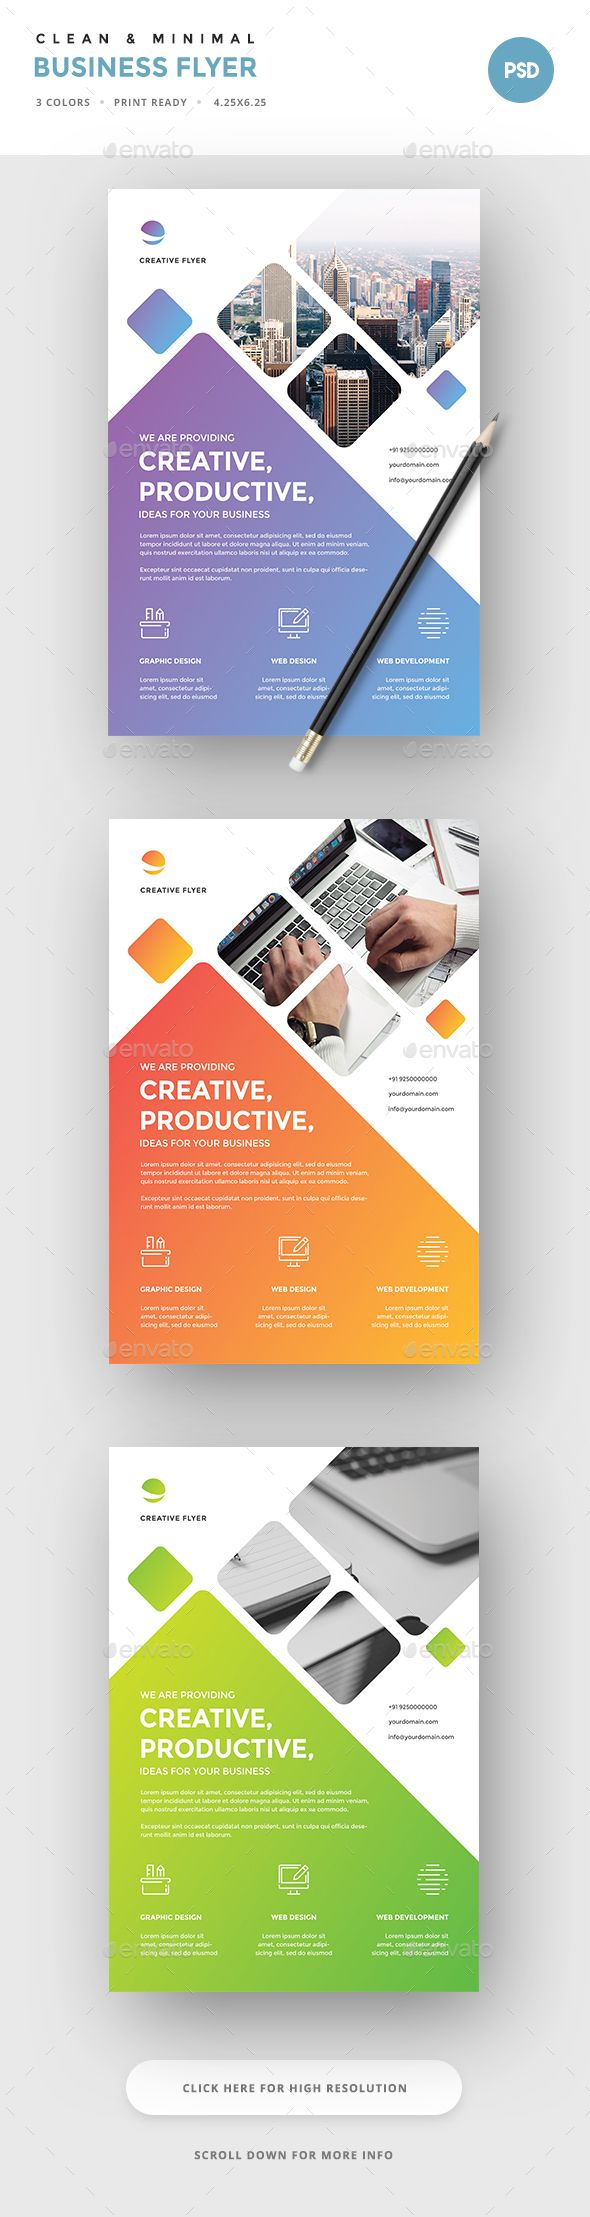 Exceptional Corporate Flyer Template PSD